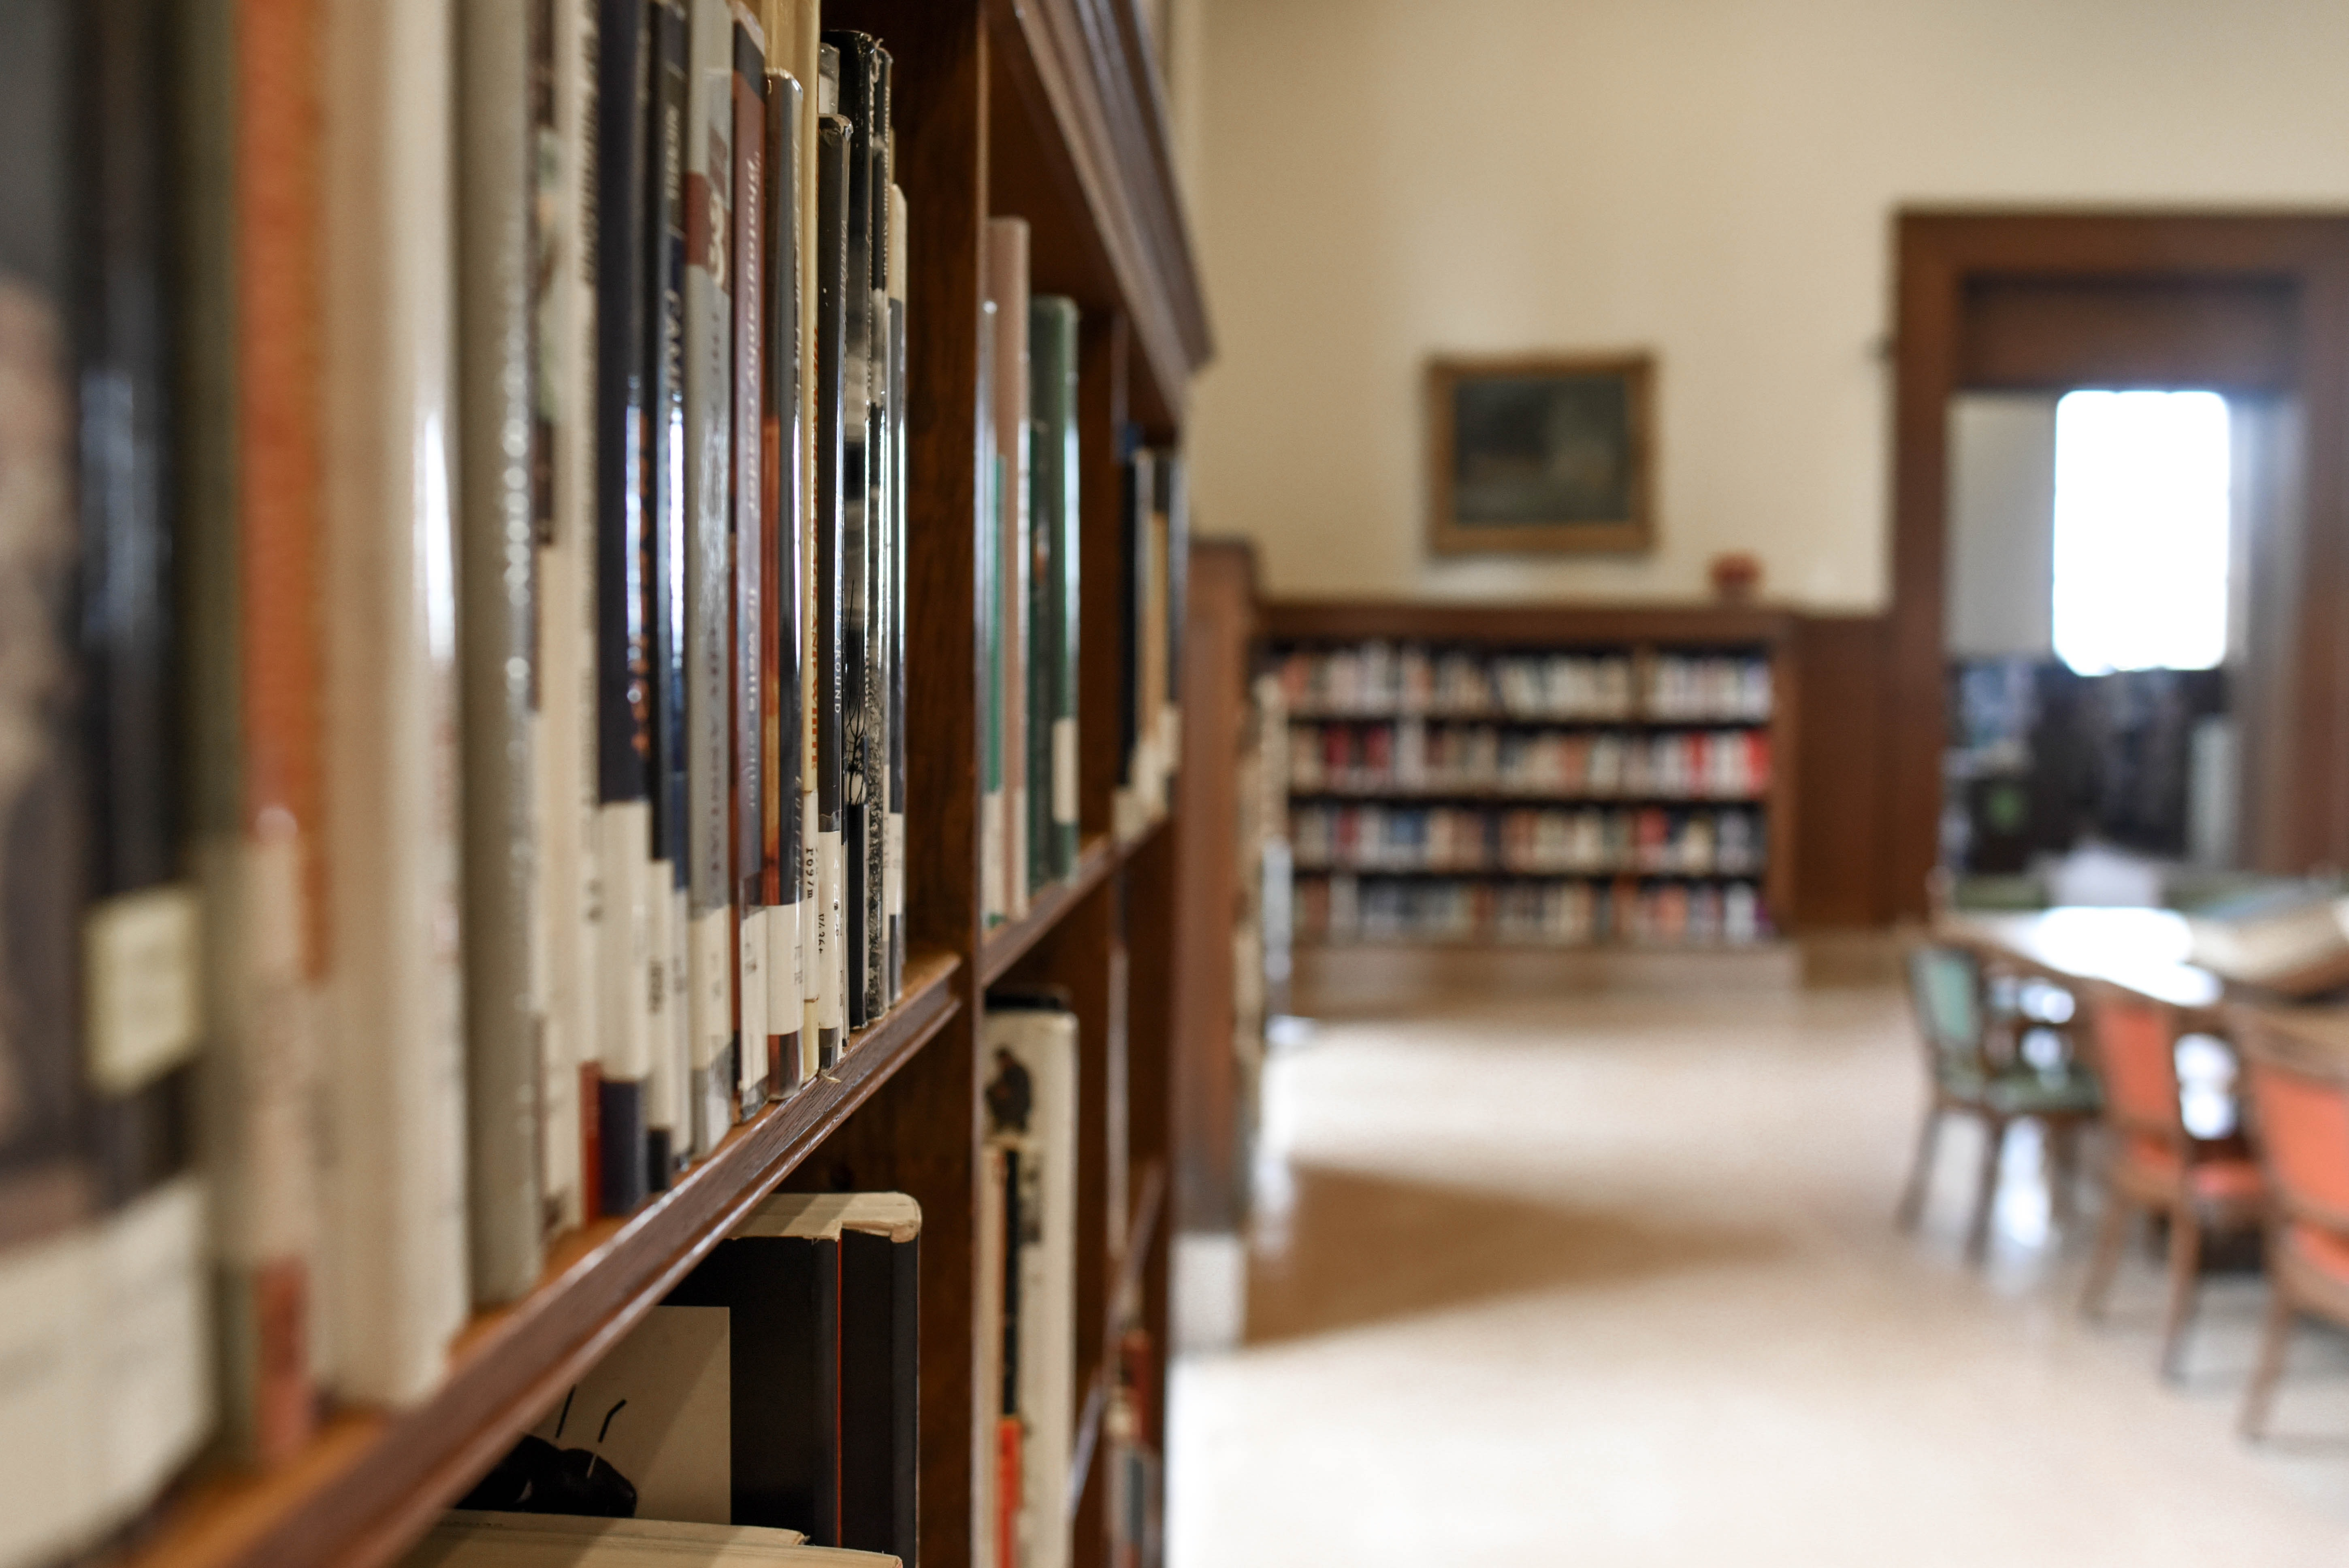 selective-focus-photography-of-bookshelf-with-books-1370296